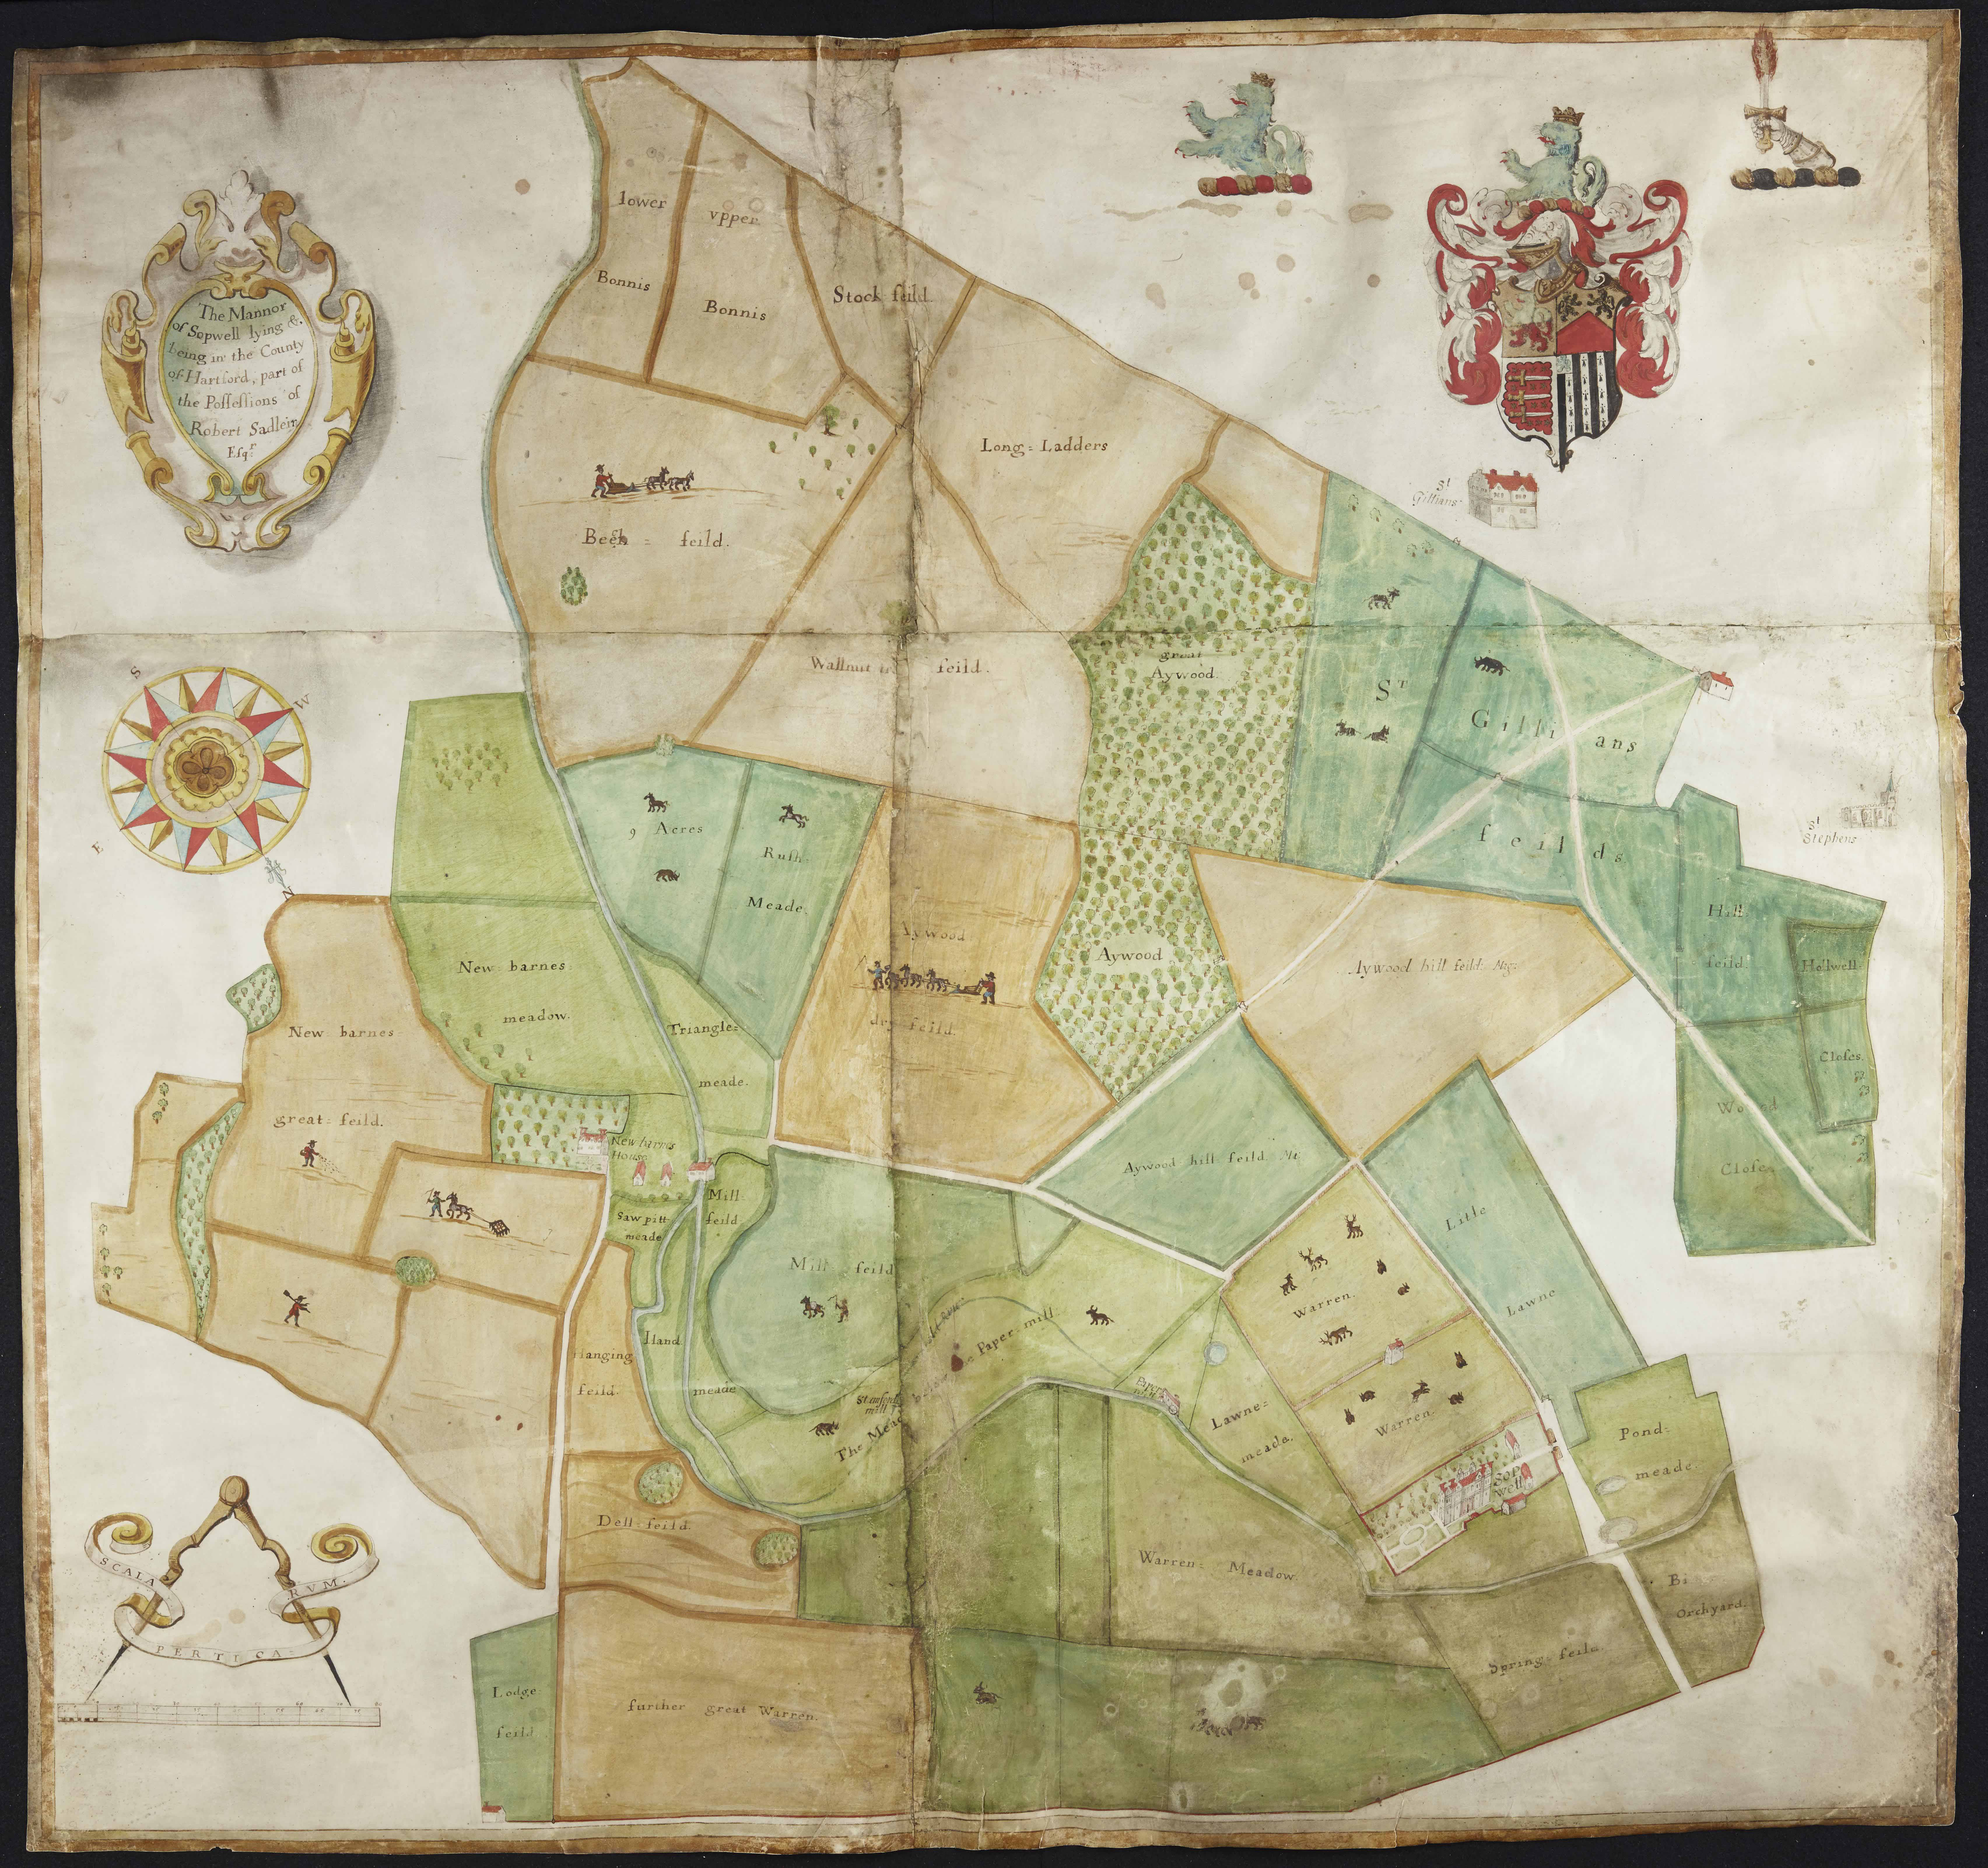 1666 map of Sopwell